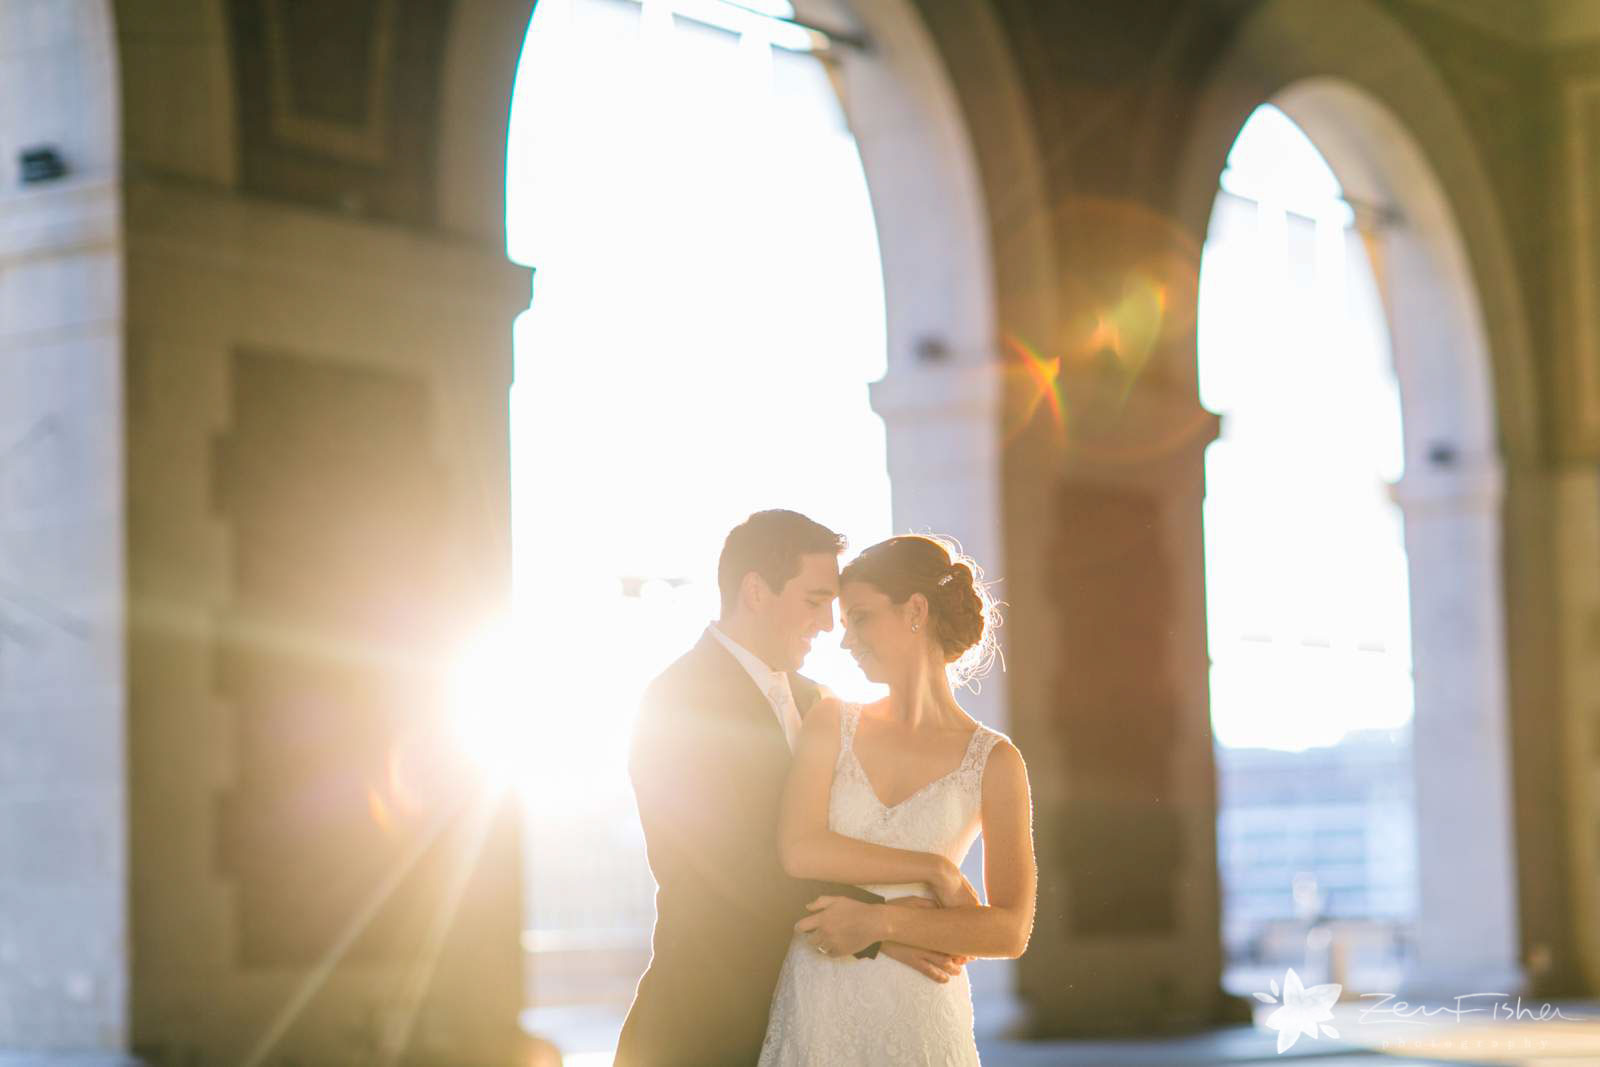 romantic sunset bride and groom portraits with architectural elements and ethereal light.